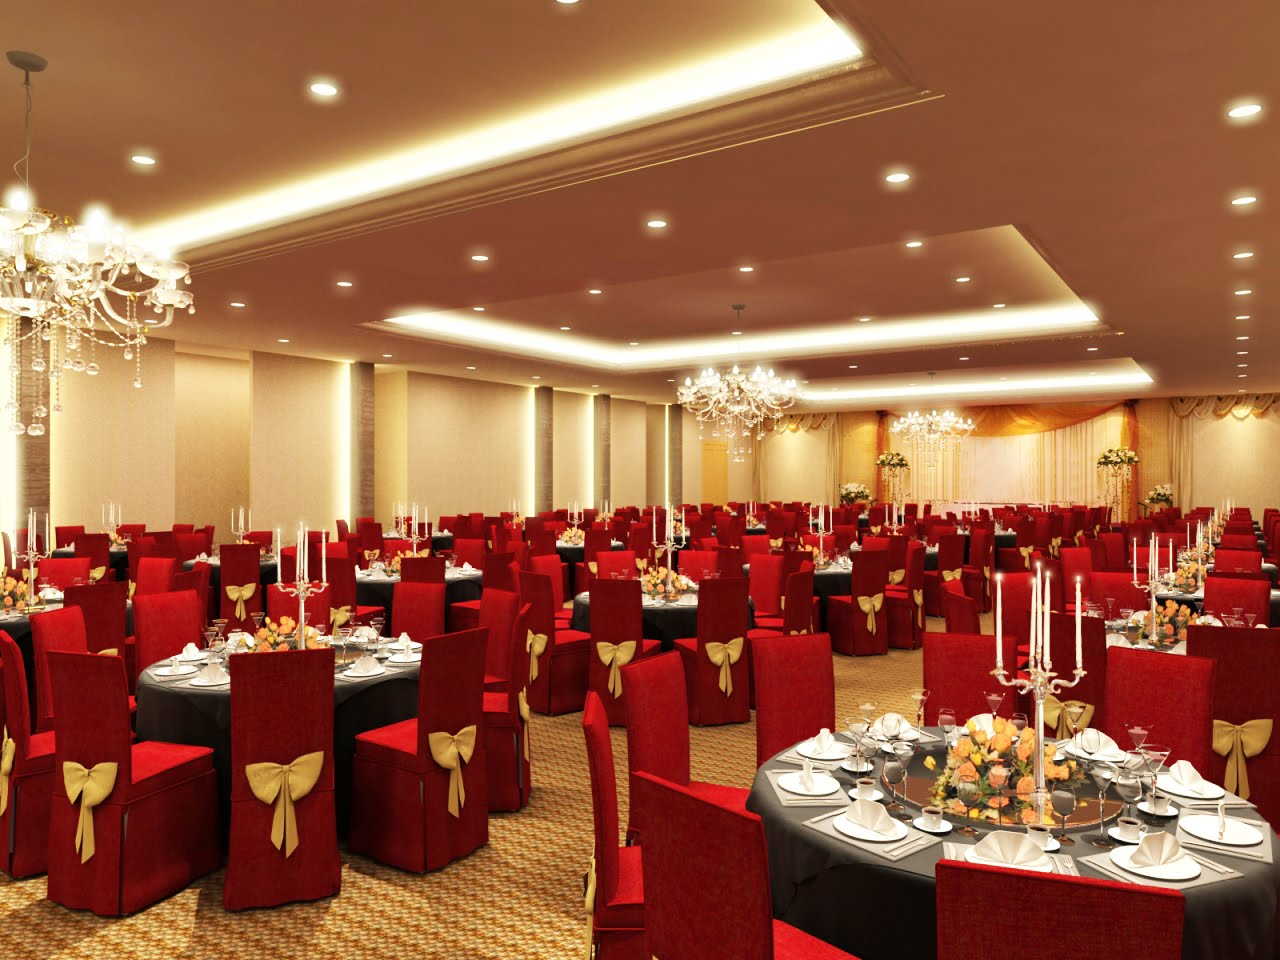 dilemma between a wedding dinner banquet lunch or reception